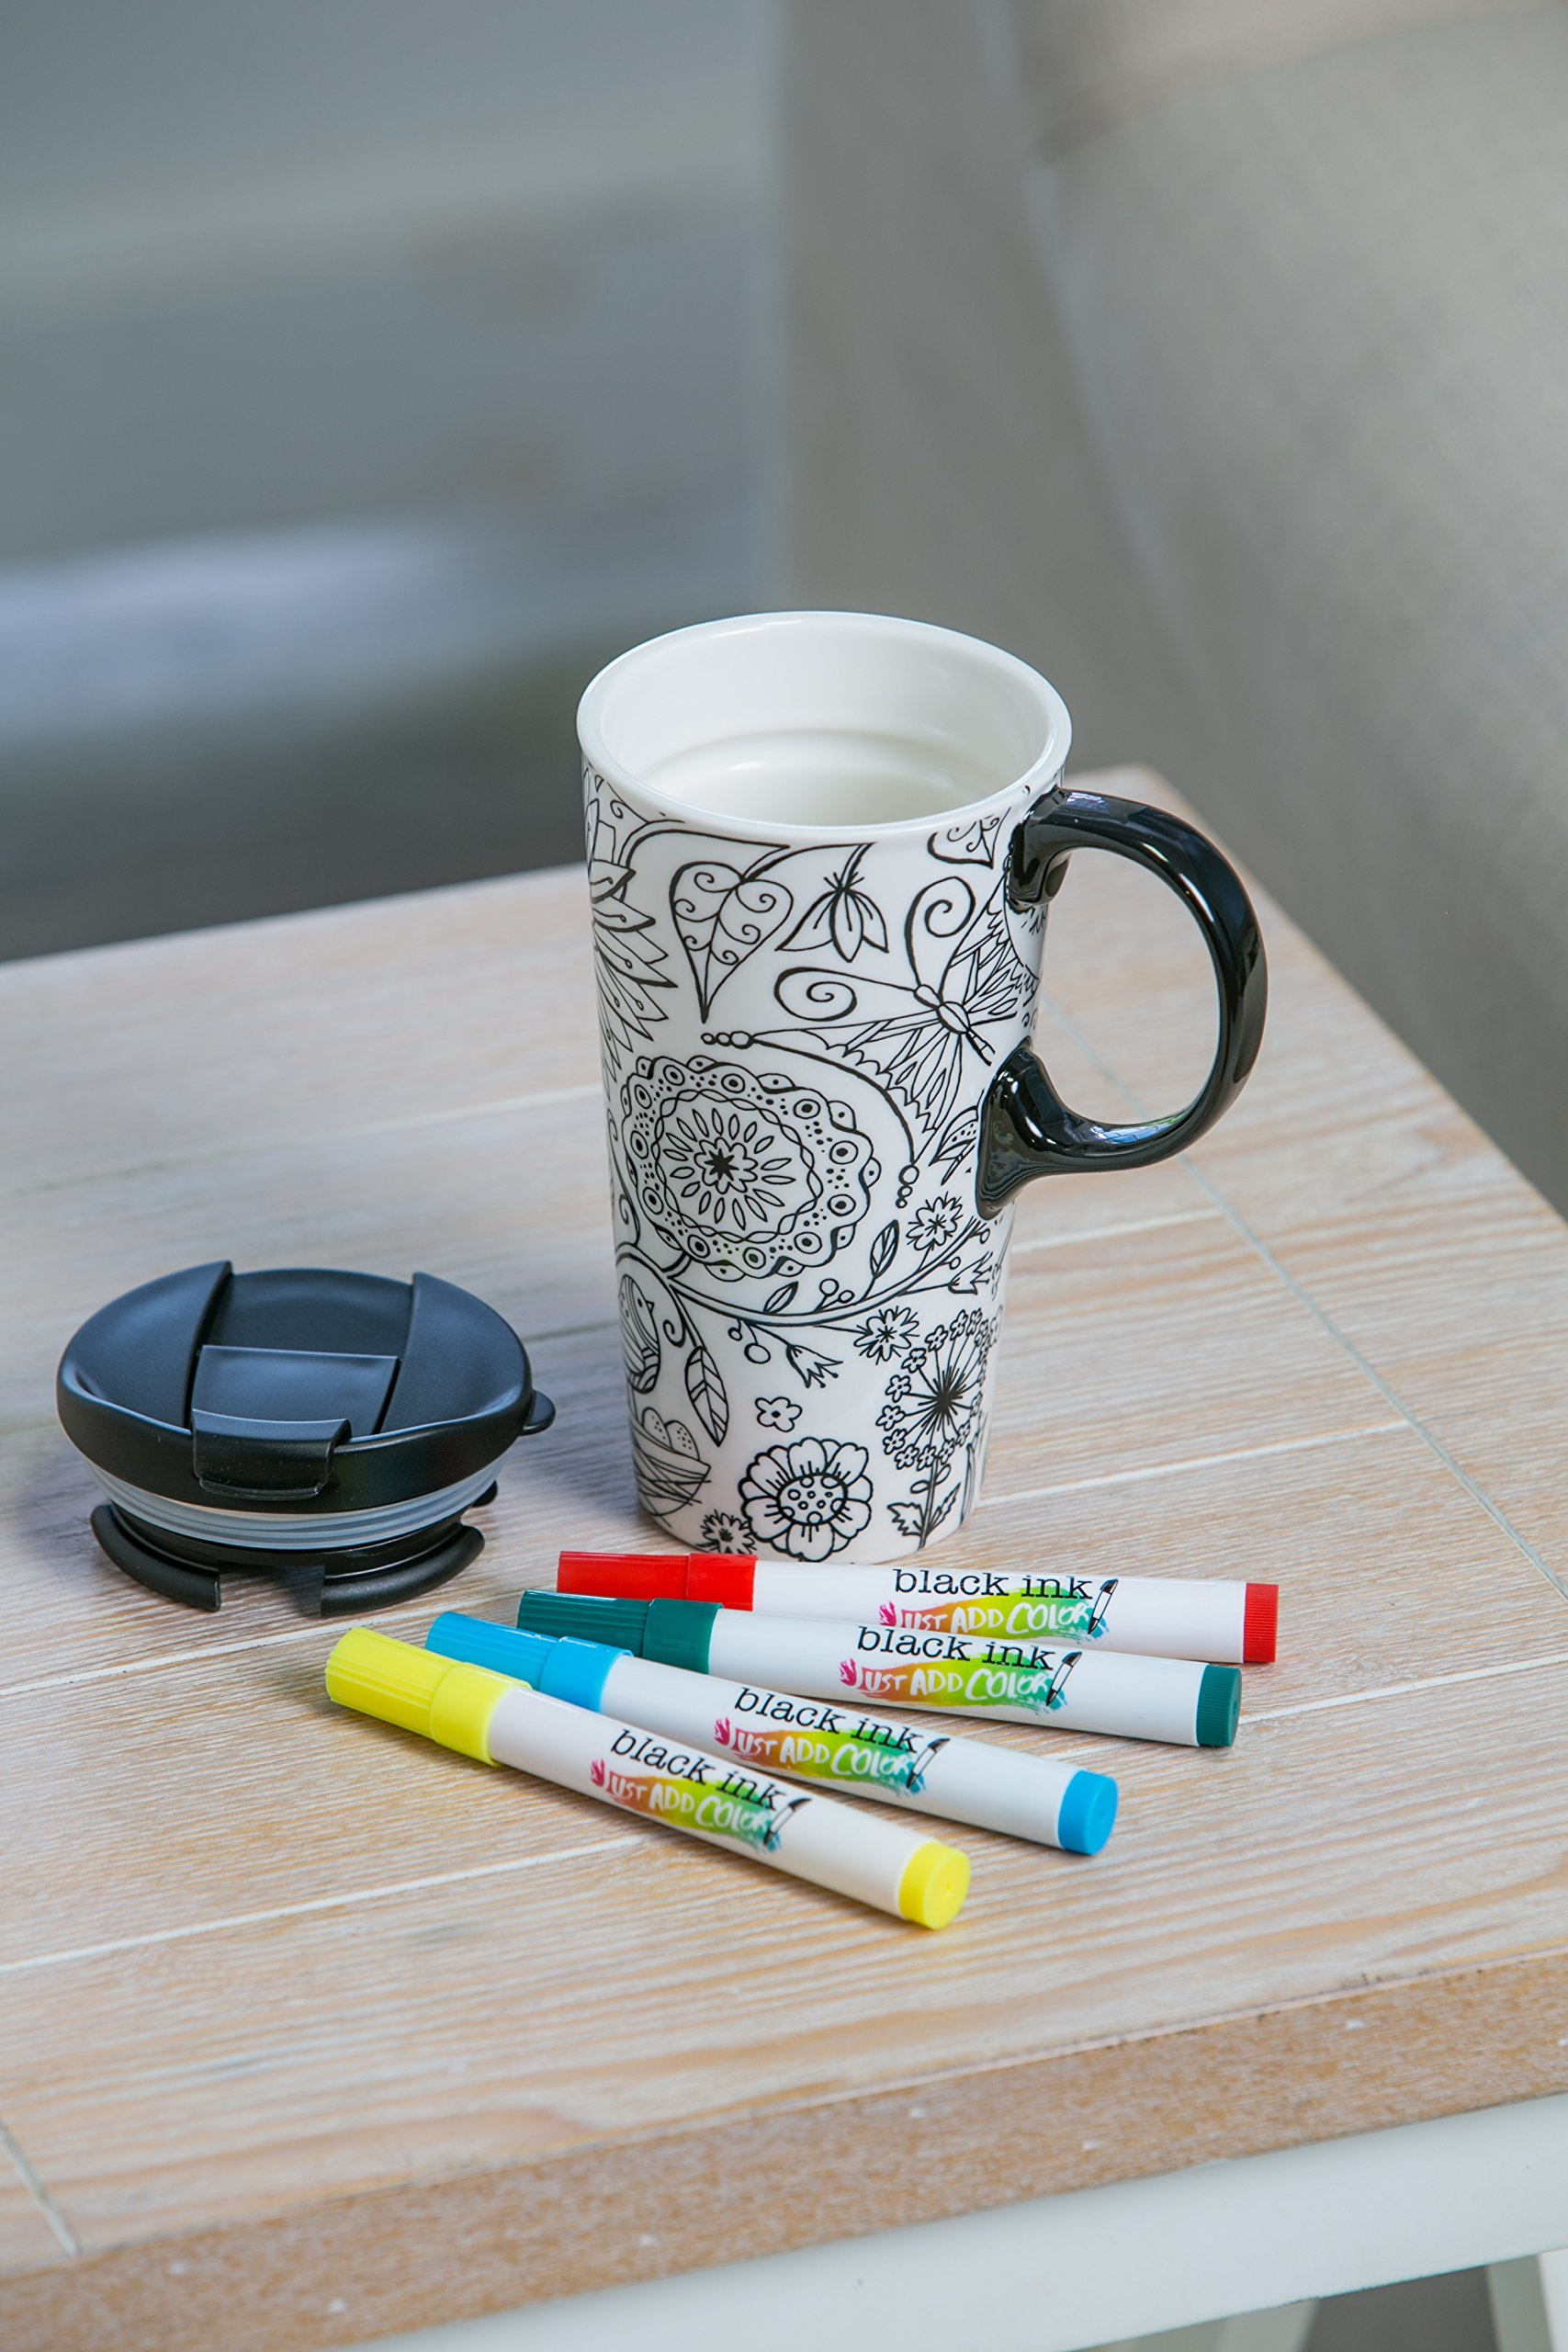 "Cypress Home Just Add Color Nature in Color 17 oz Boxed Ceramic Perfect Travel Coffee Mug or Tea Cup with Lid - Includes 4 Food-Safe Markers - 3""W x 5.25''D x 7''H"